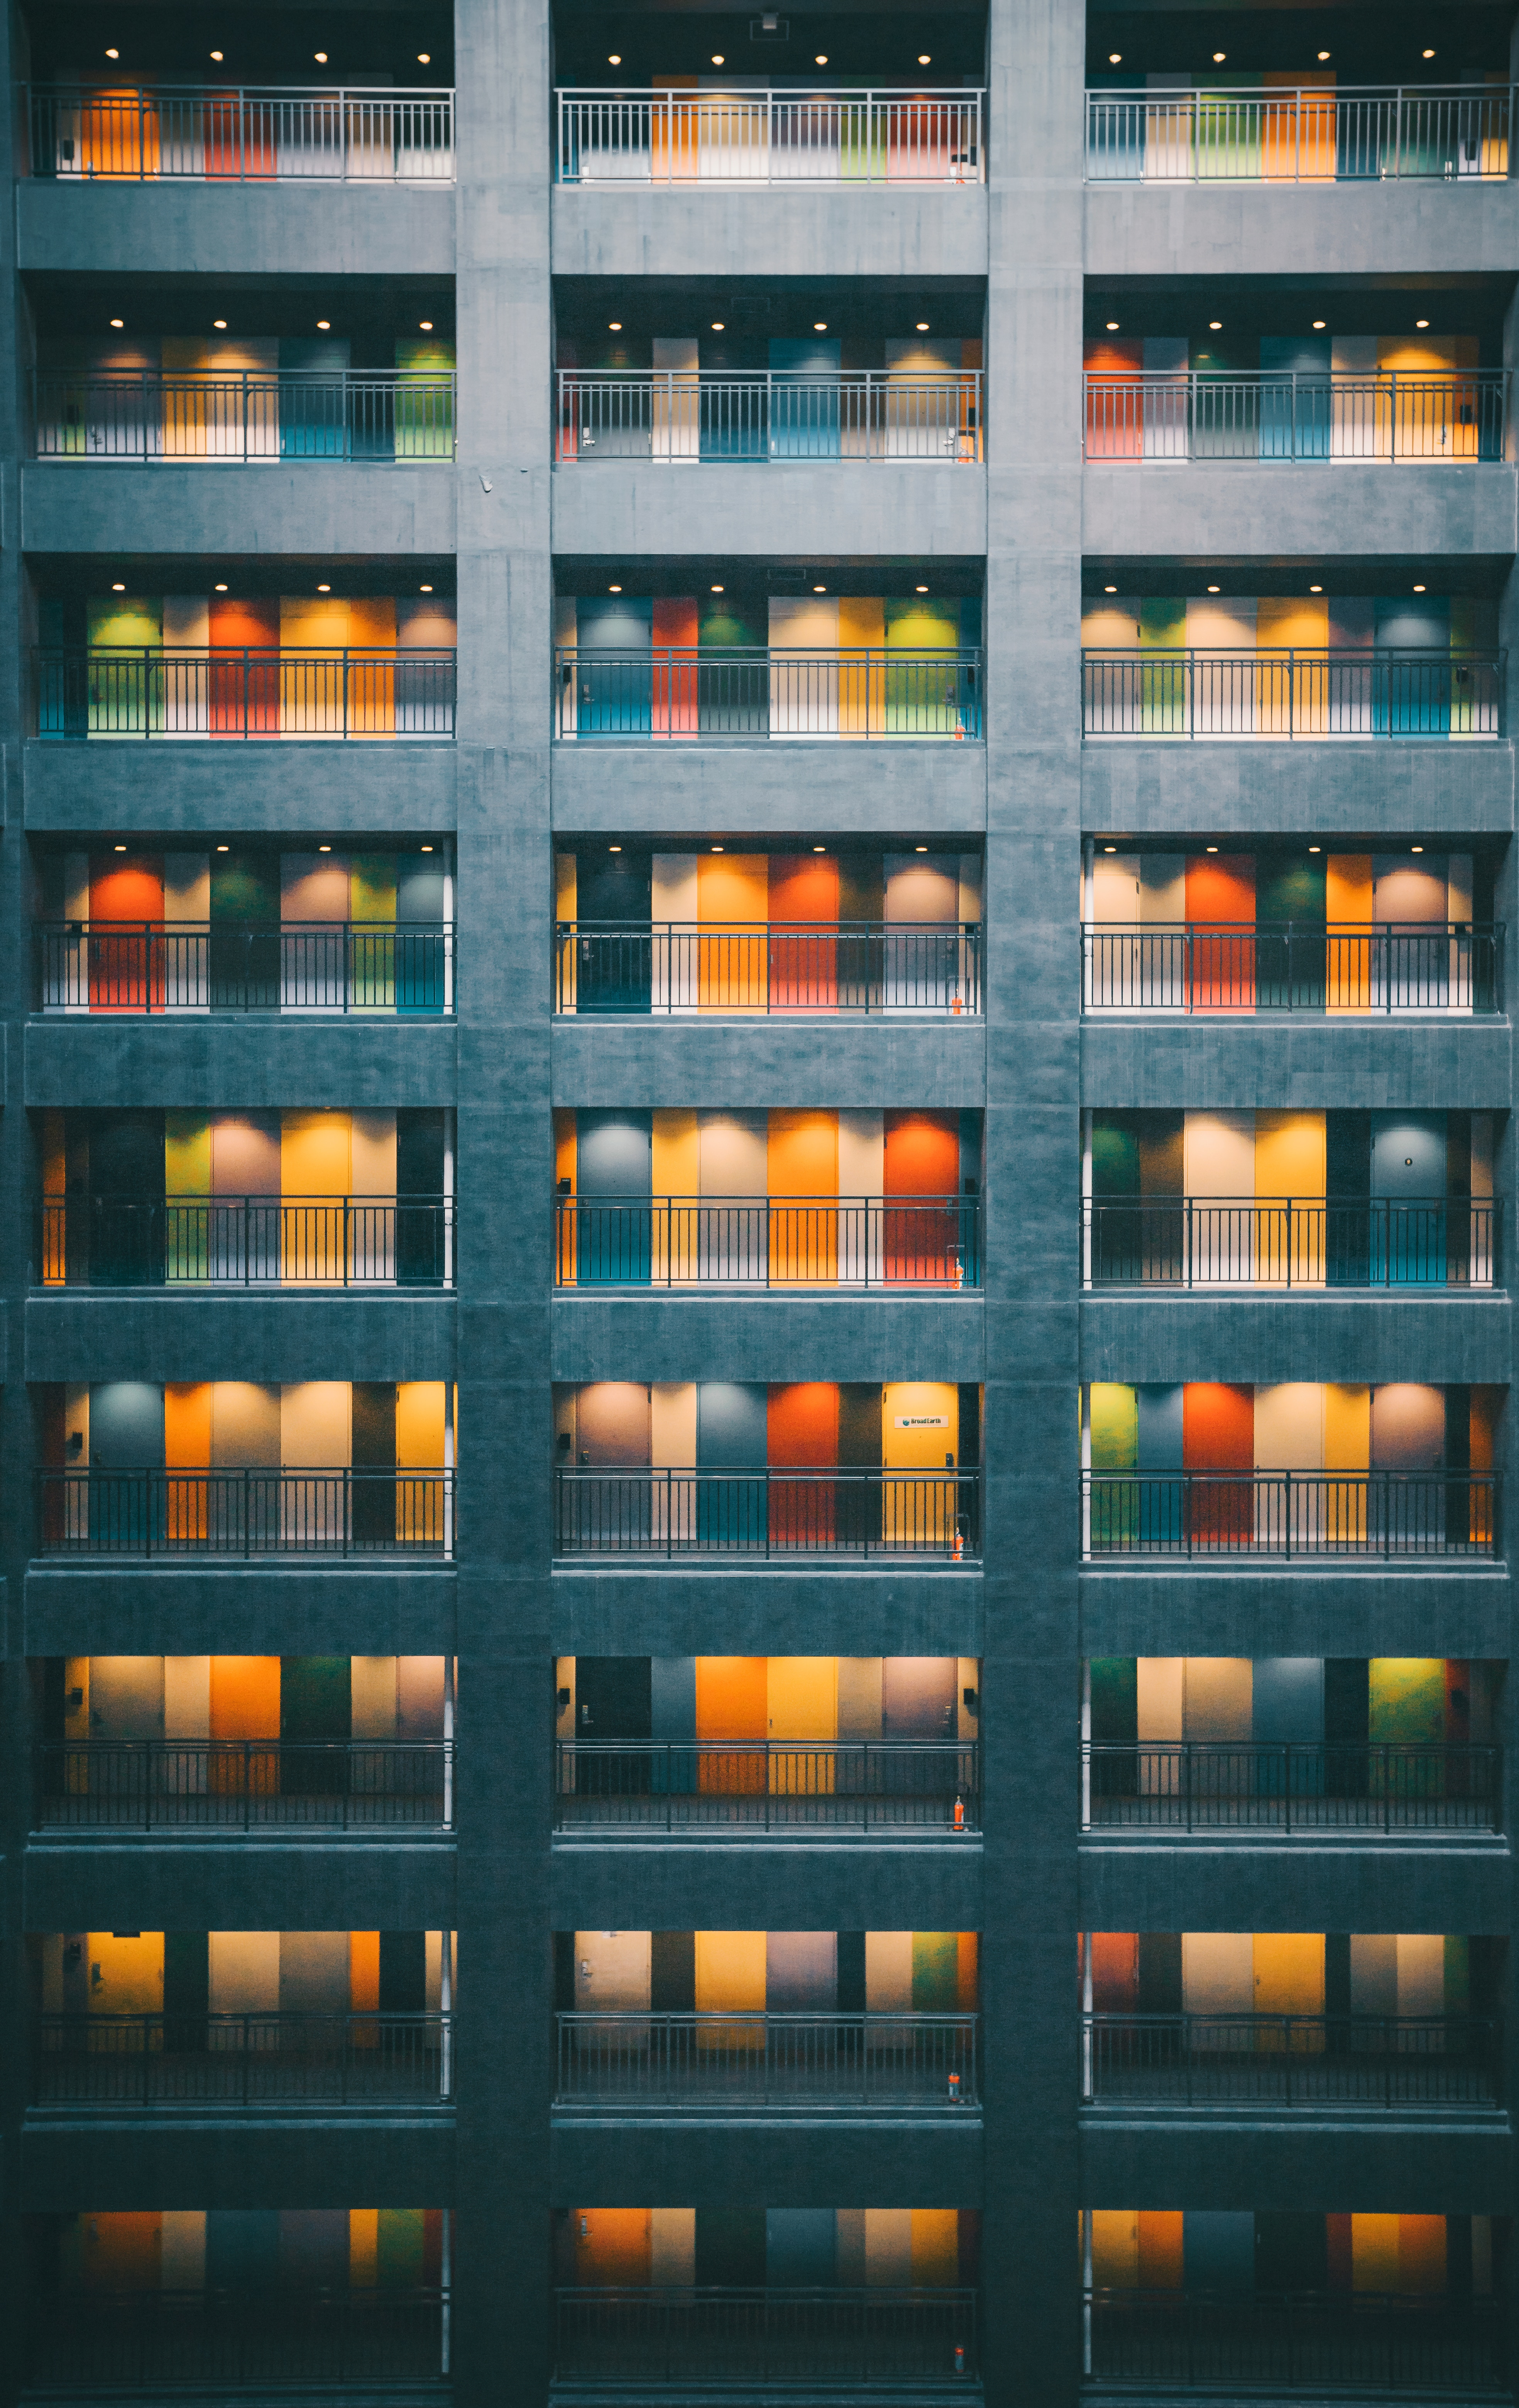 137176 download wallpaper Minimalism, Building, Doors, Door, Multicolored, Motley, Architecture screensavers and pictures for free